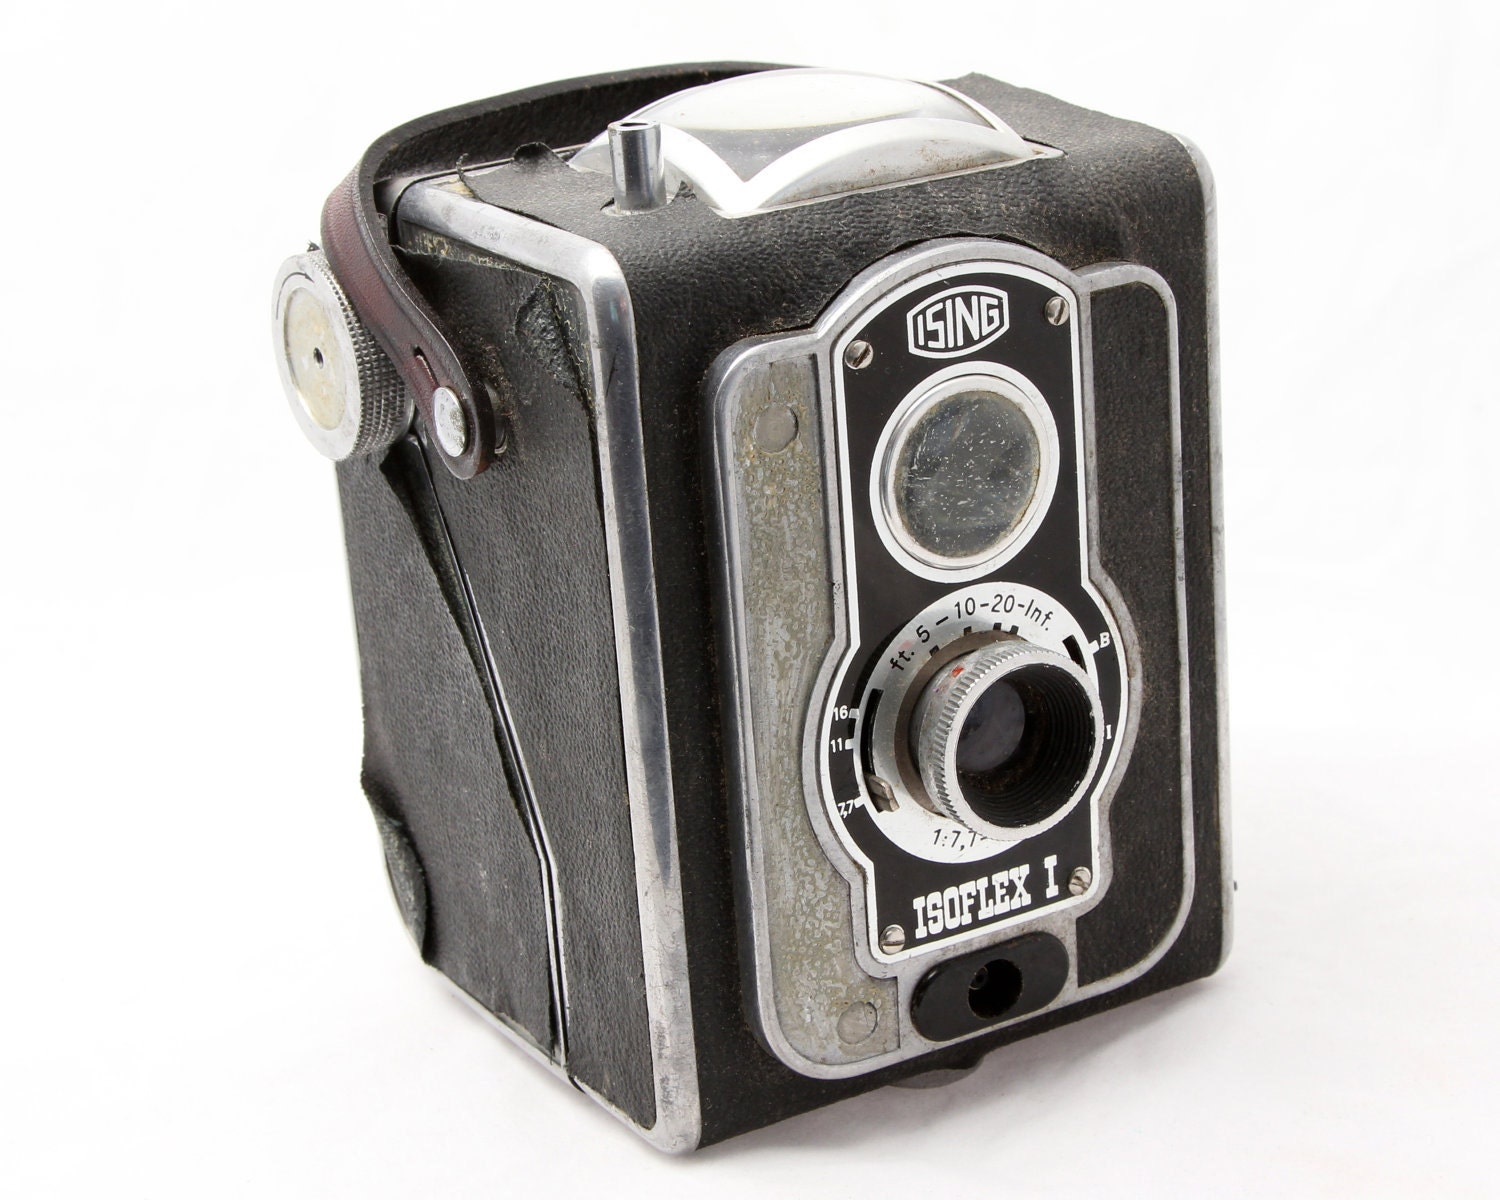 Ising Isoflex Twin Lens Reflex TLR Camera - Germany